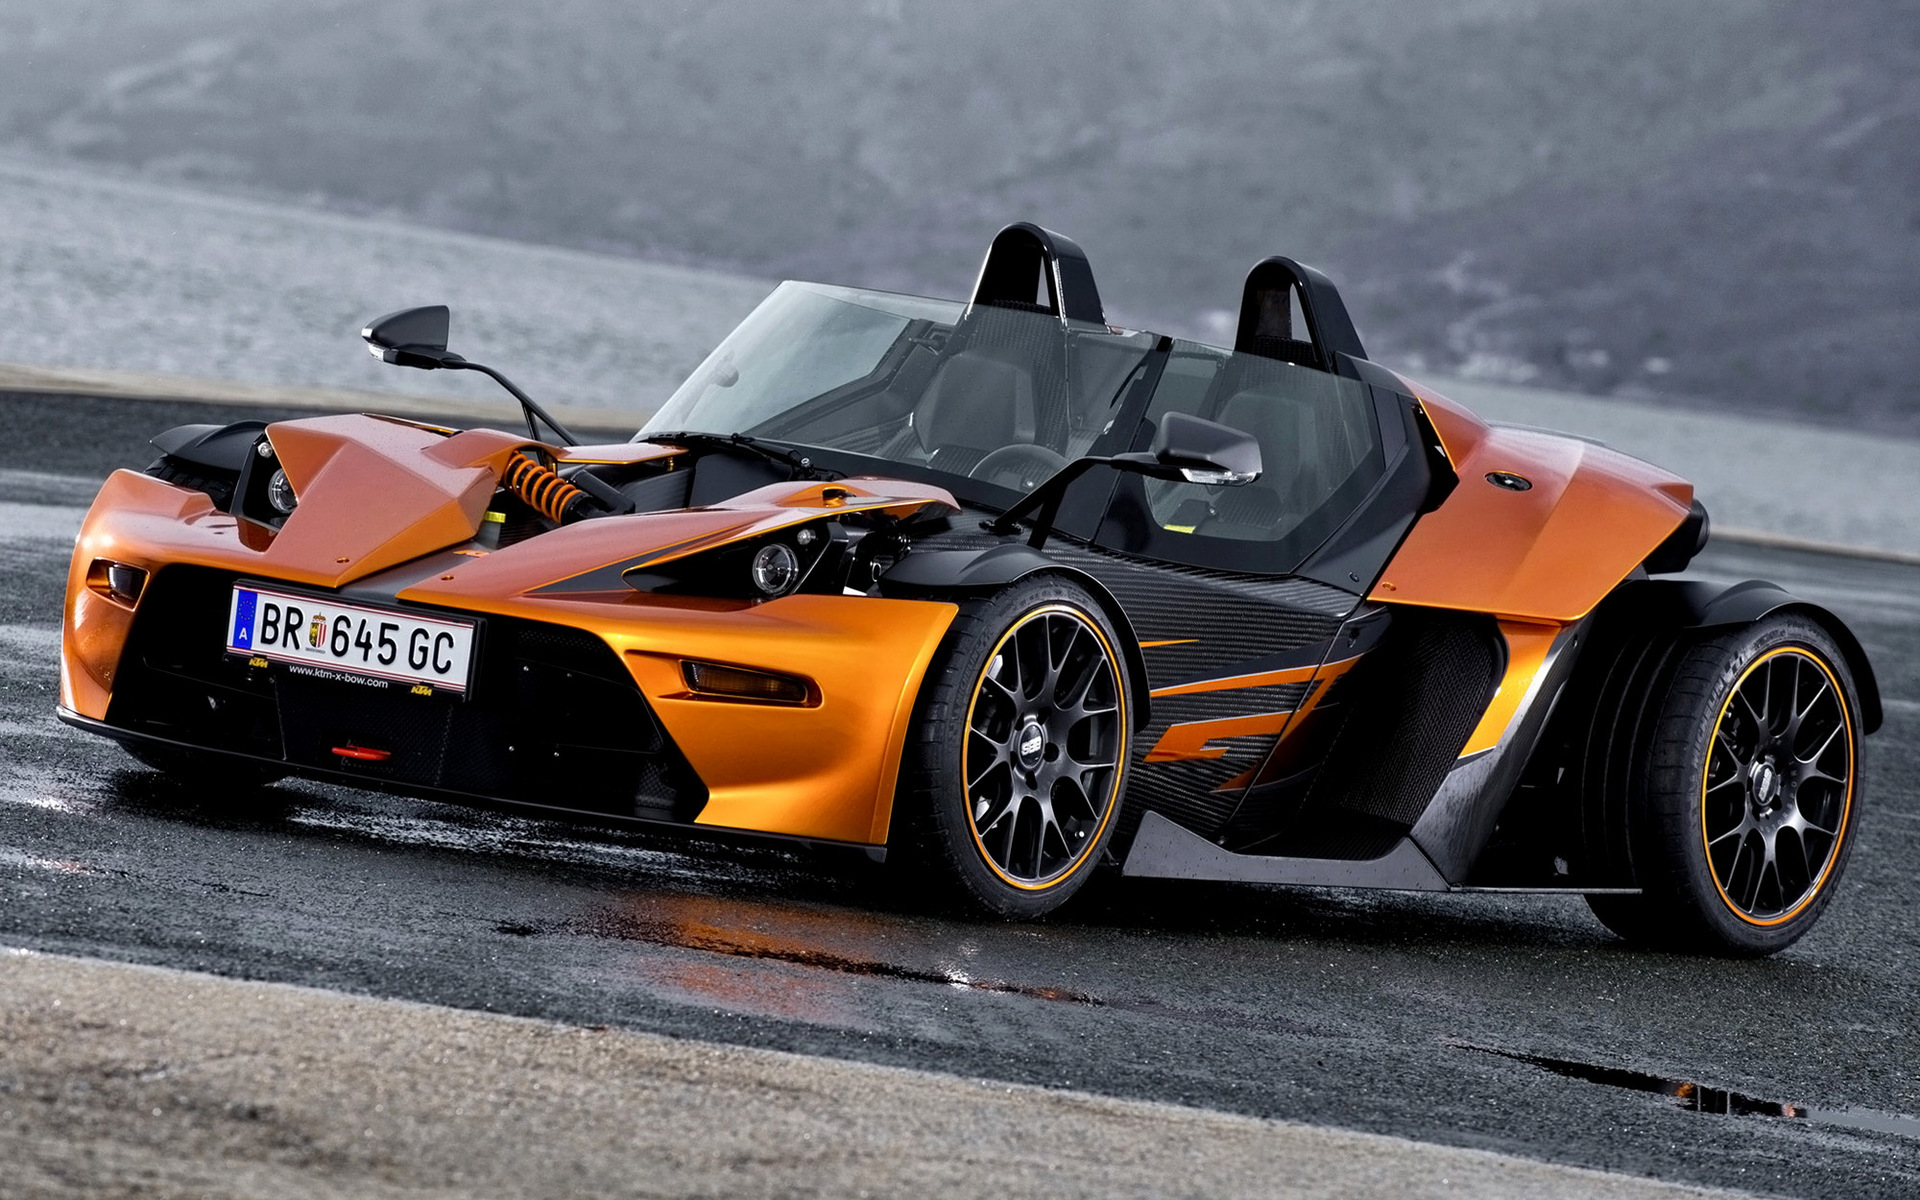 Ktm X Bow >> KTM X-Bow GT (2013) Wallpapers and HD Images - Car Pixel